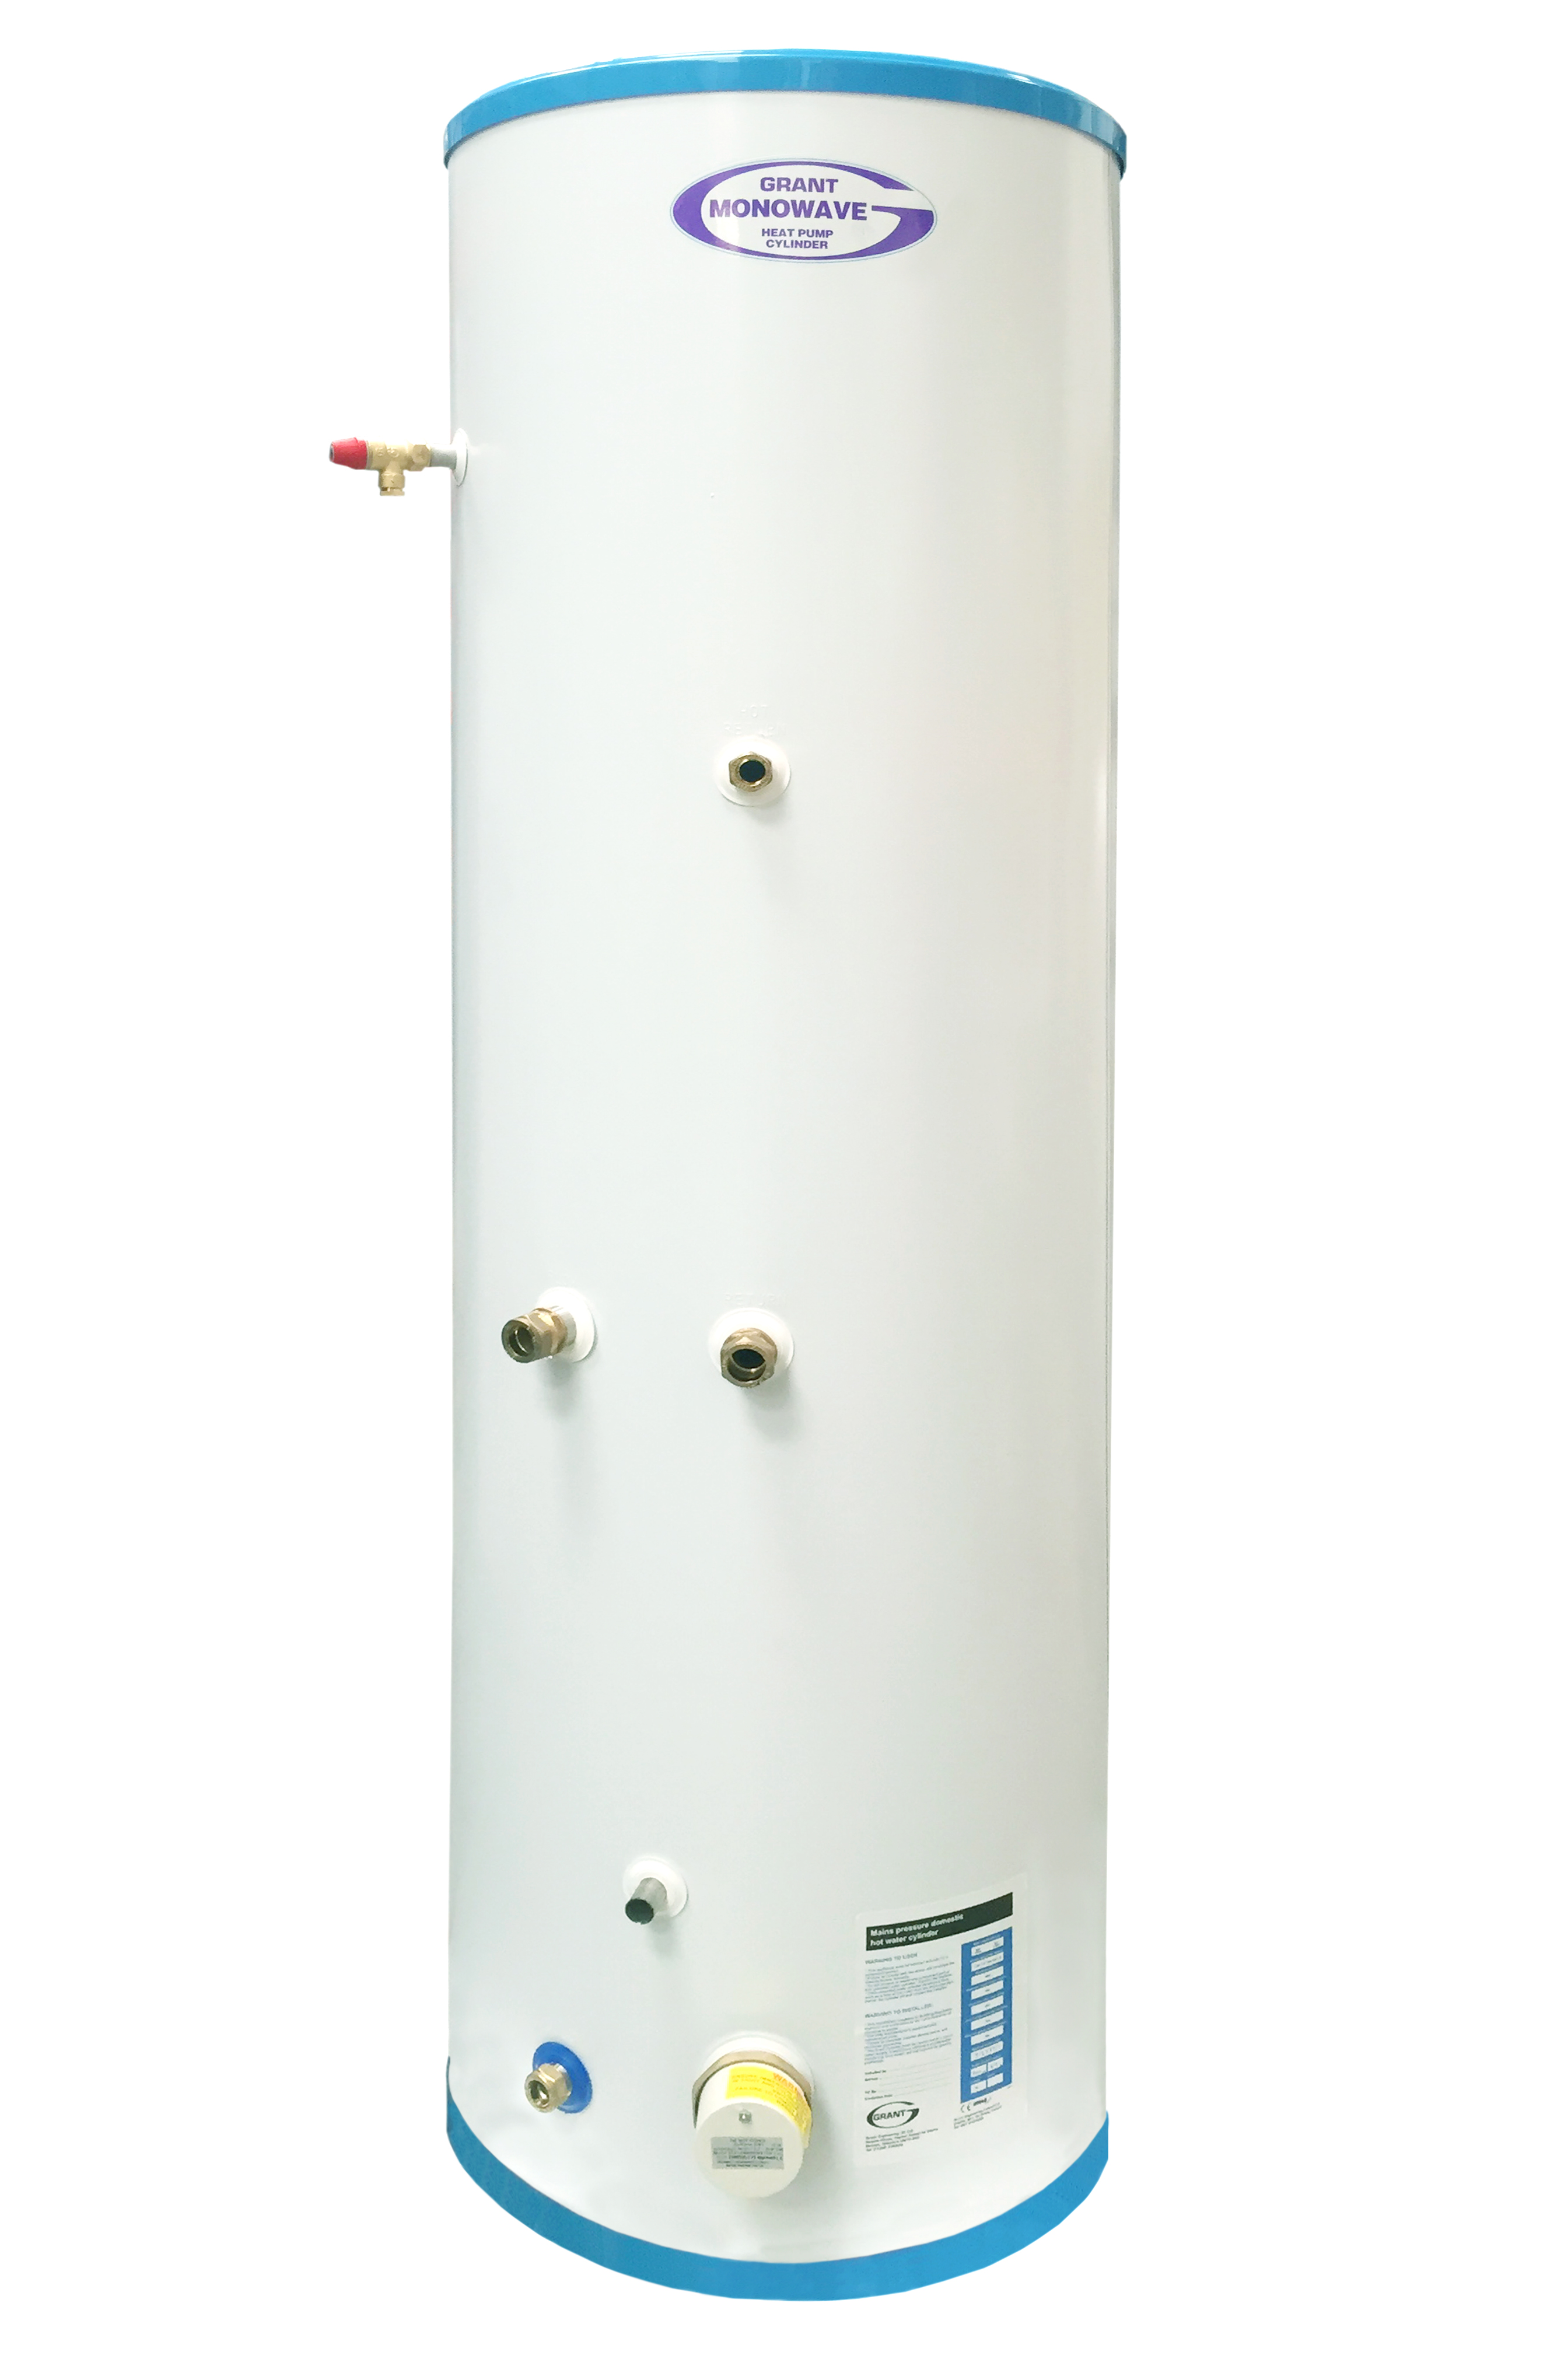 Grant introduces new ErP A-rated heat pump cylinder